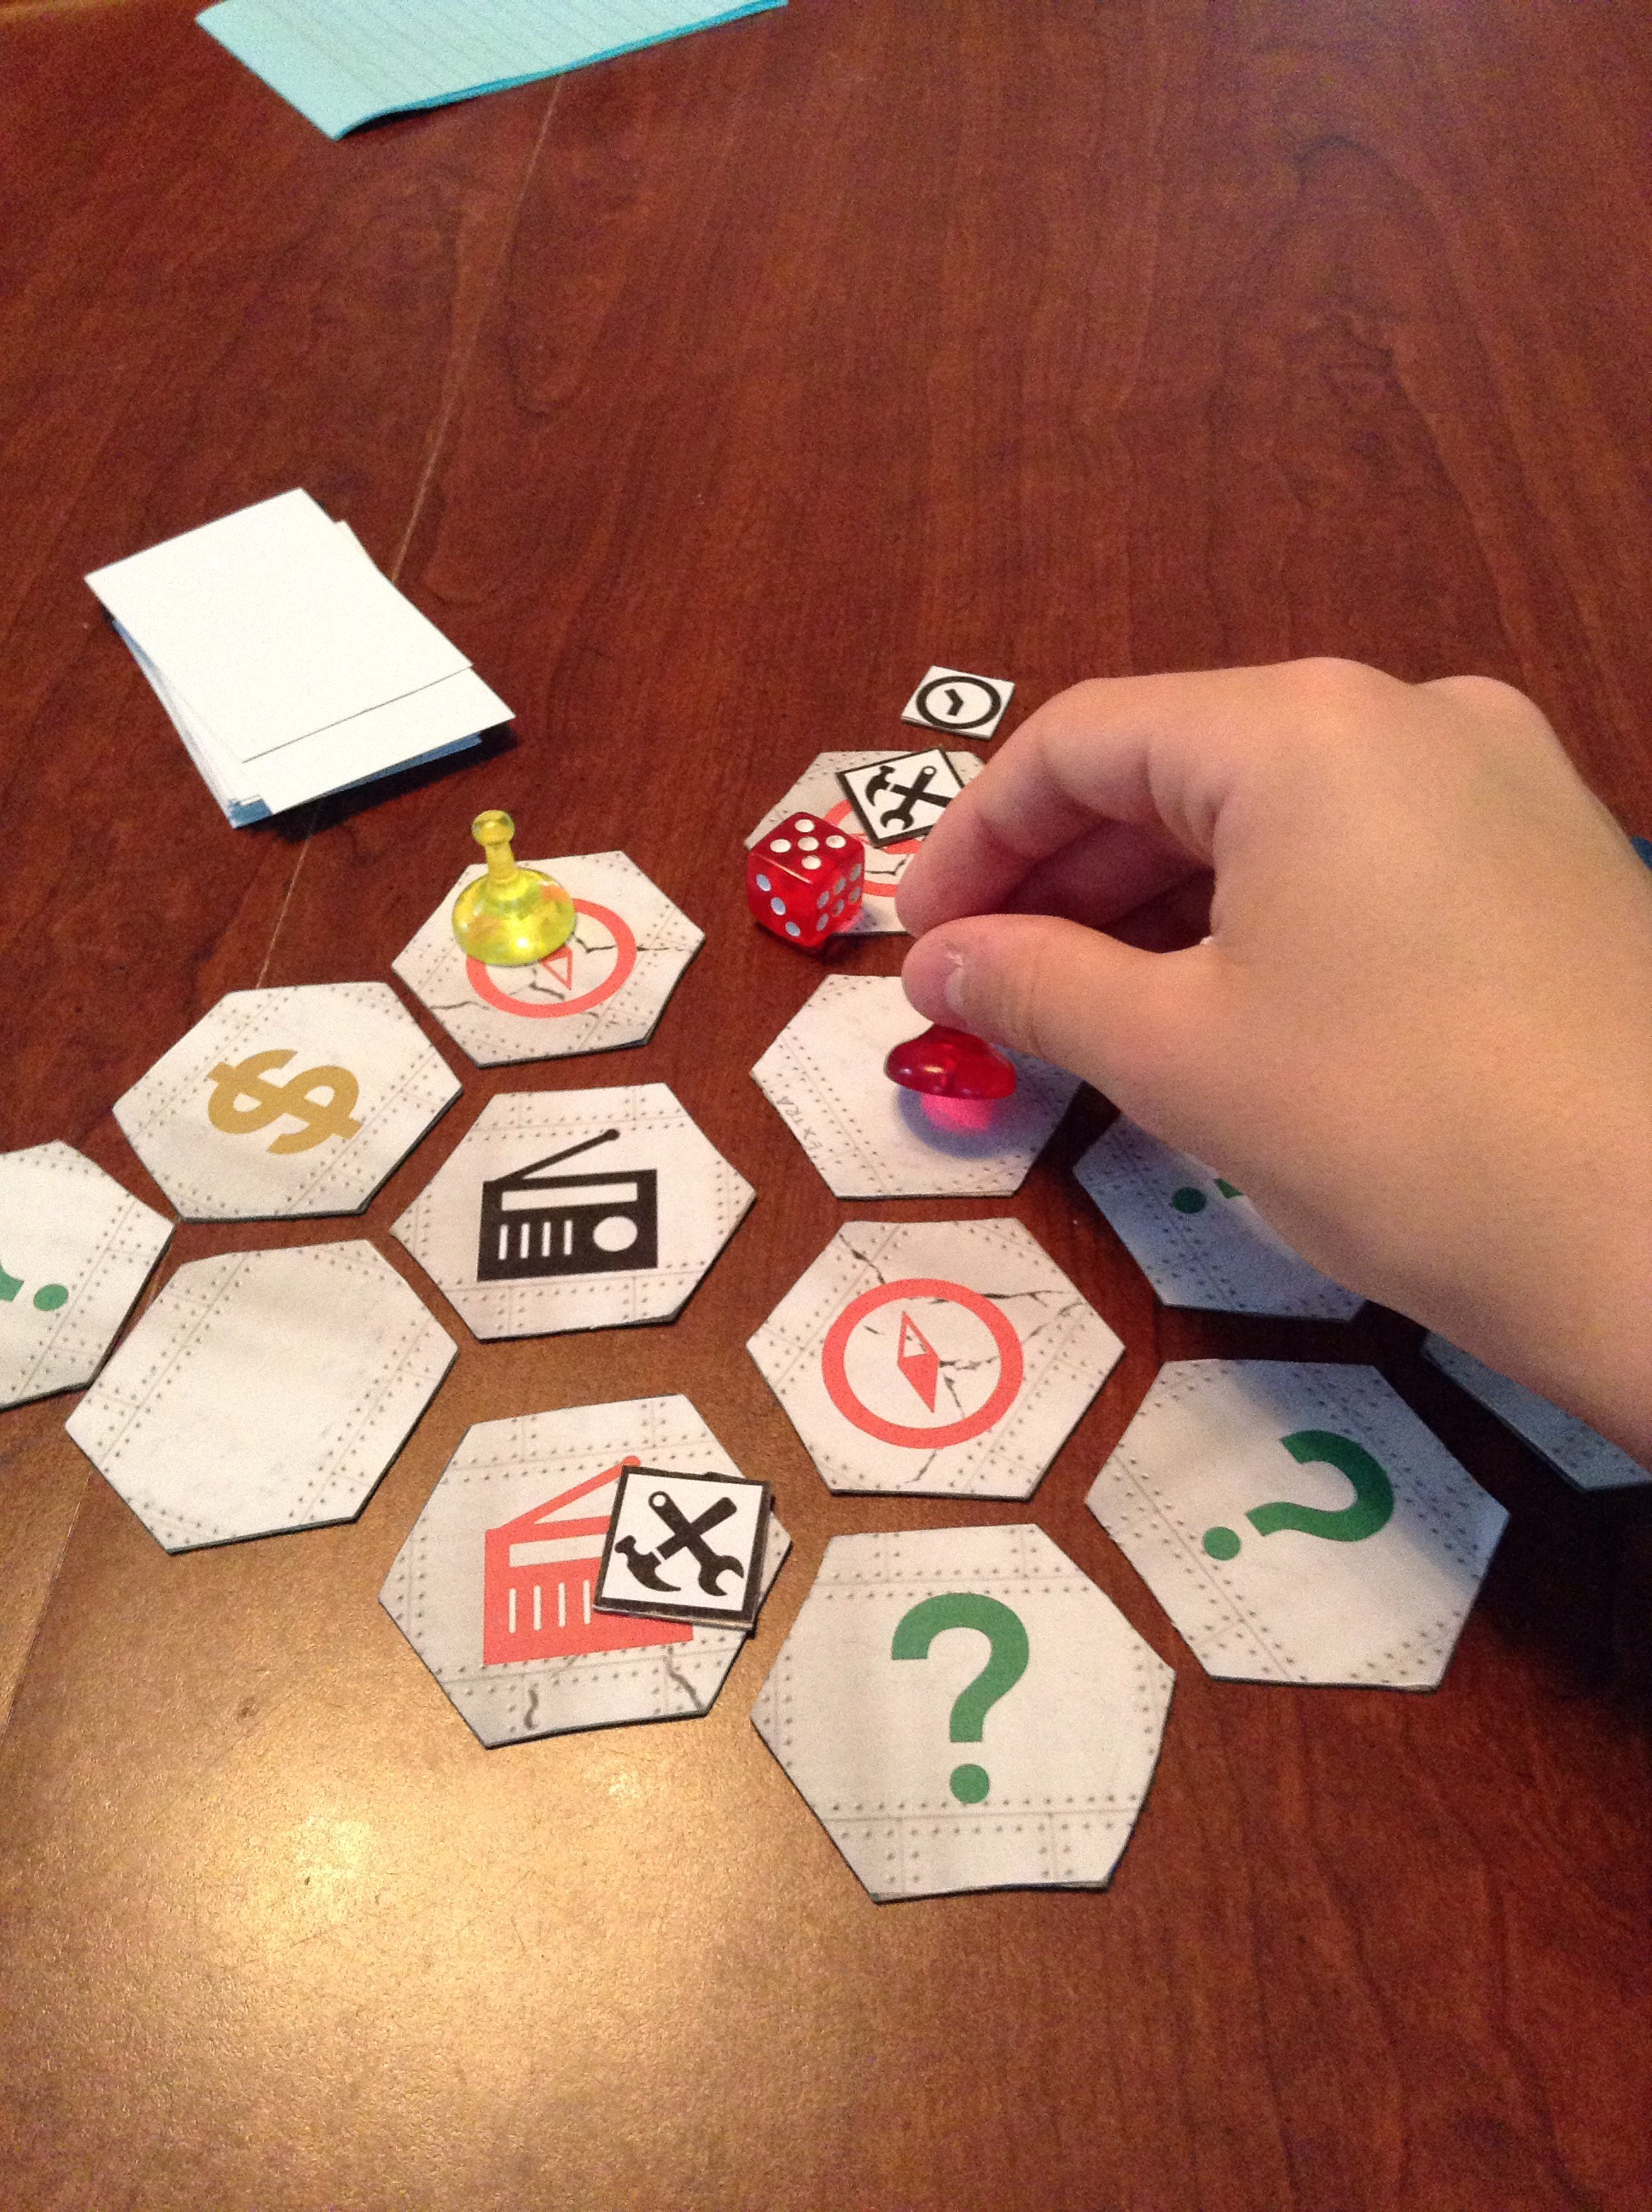 Picture of Playtesting